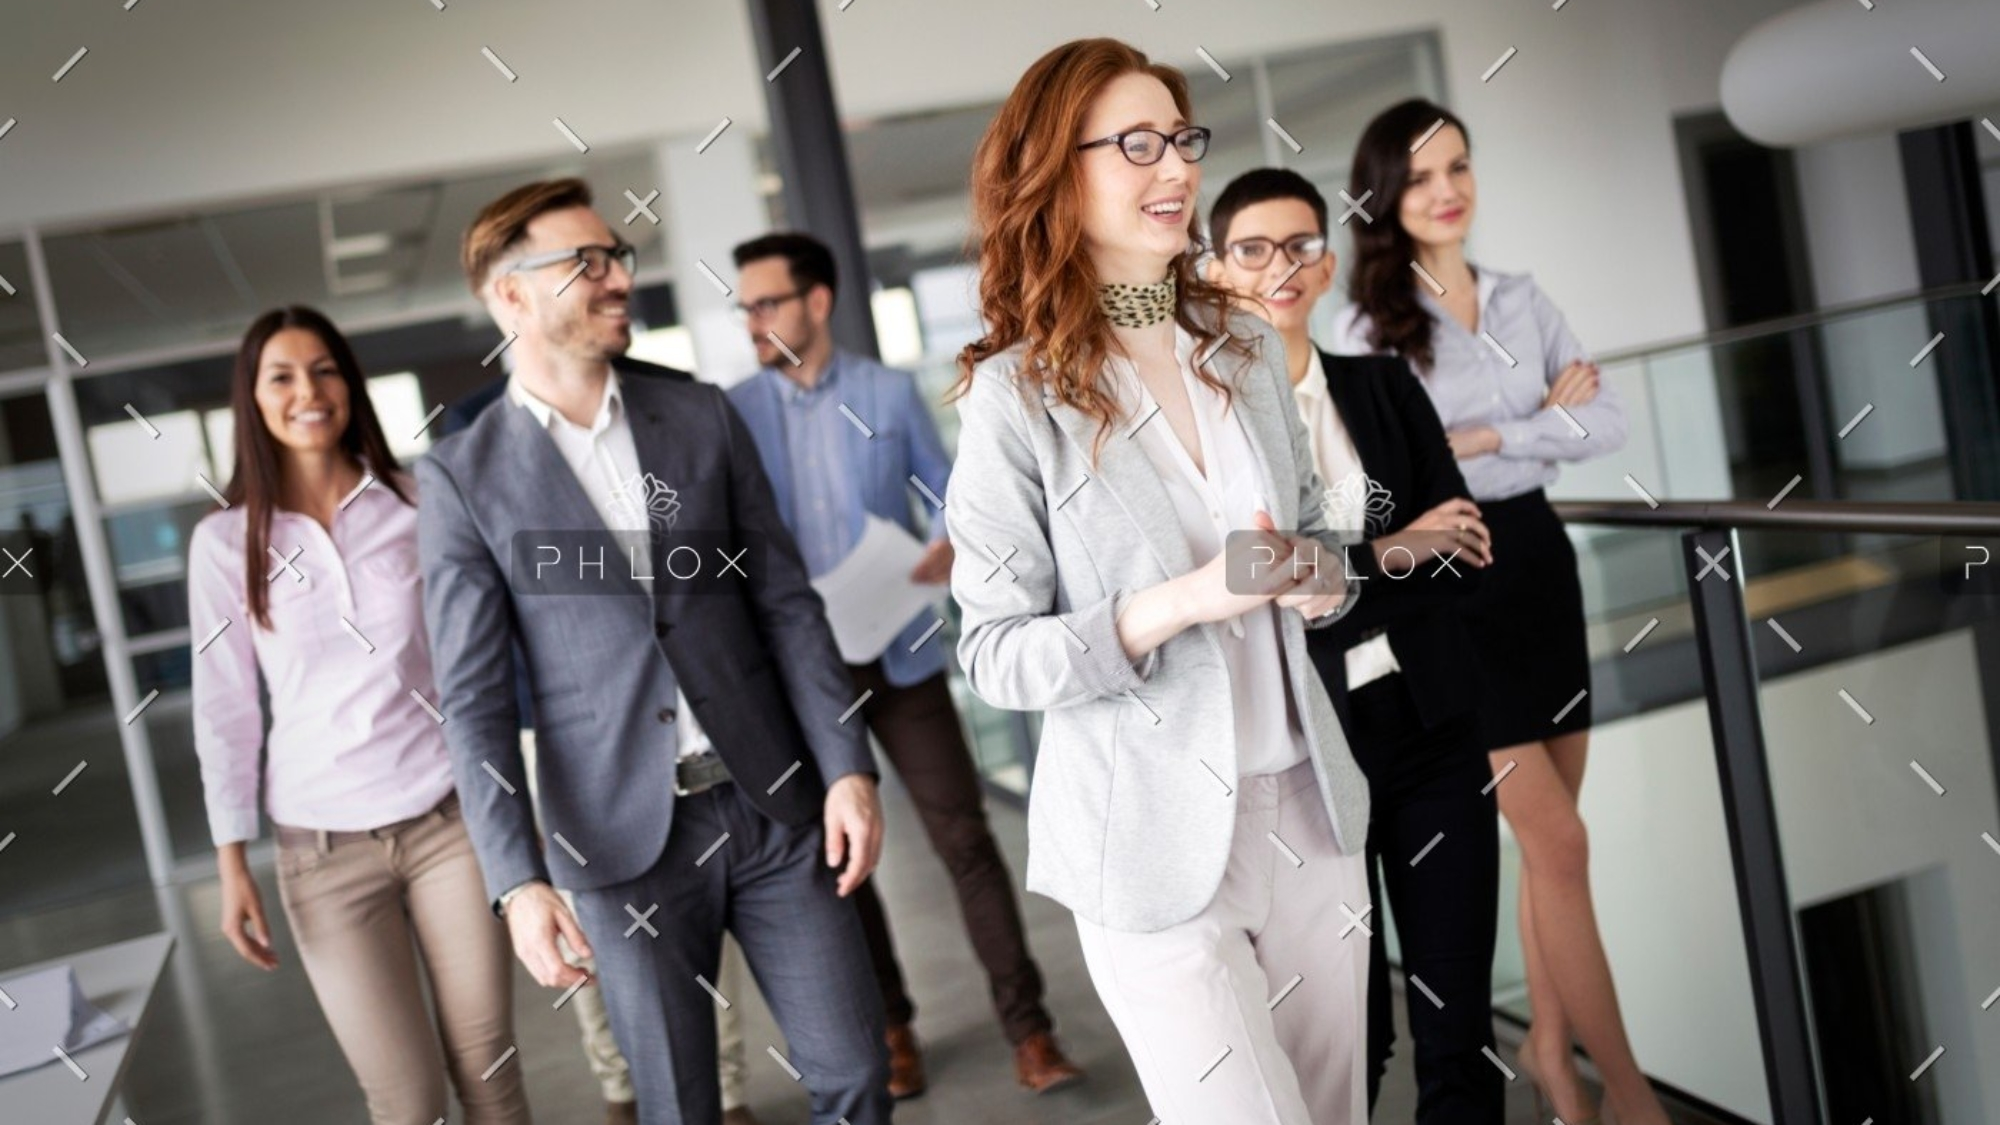 demo-attachment-441-business-young-people-meeting-conference-65BA9P7